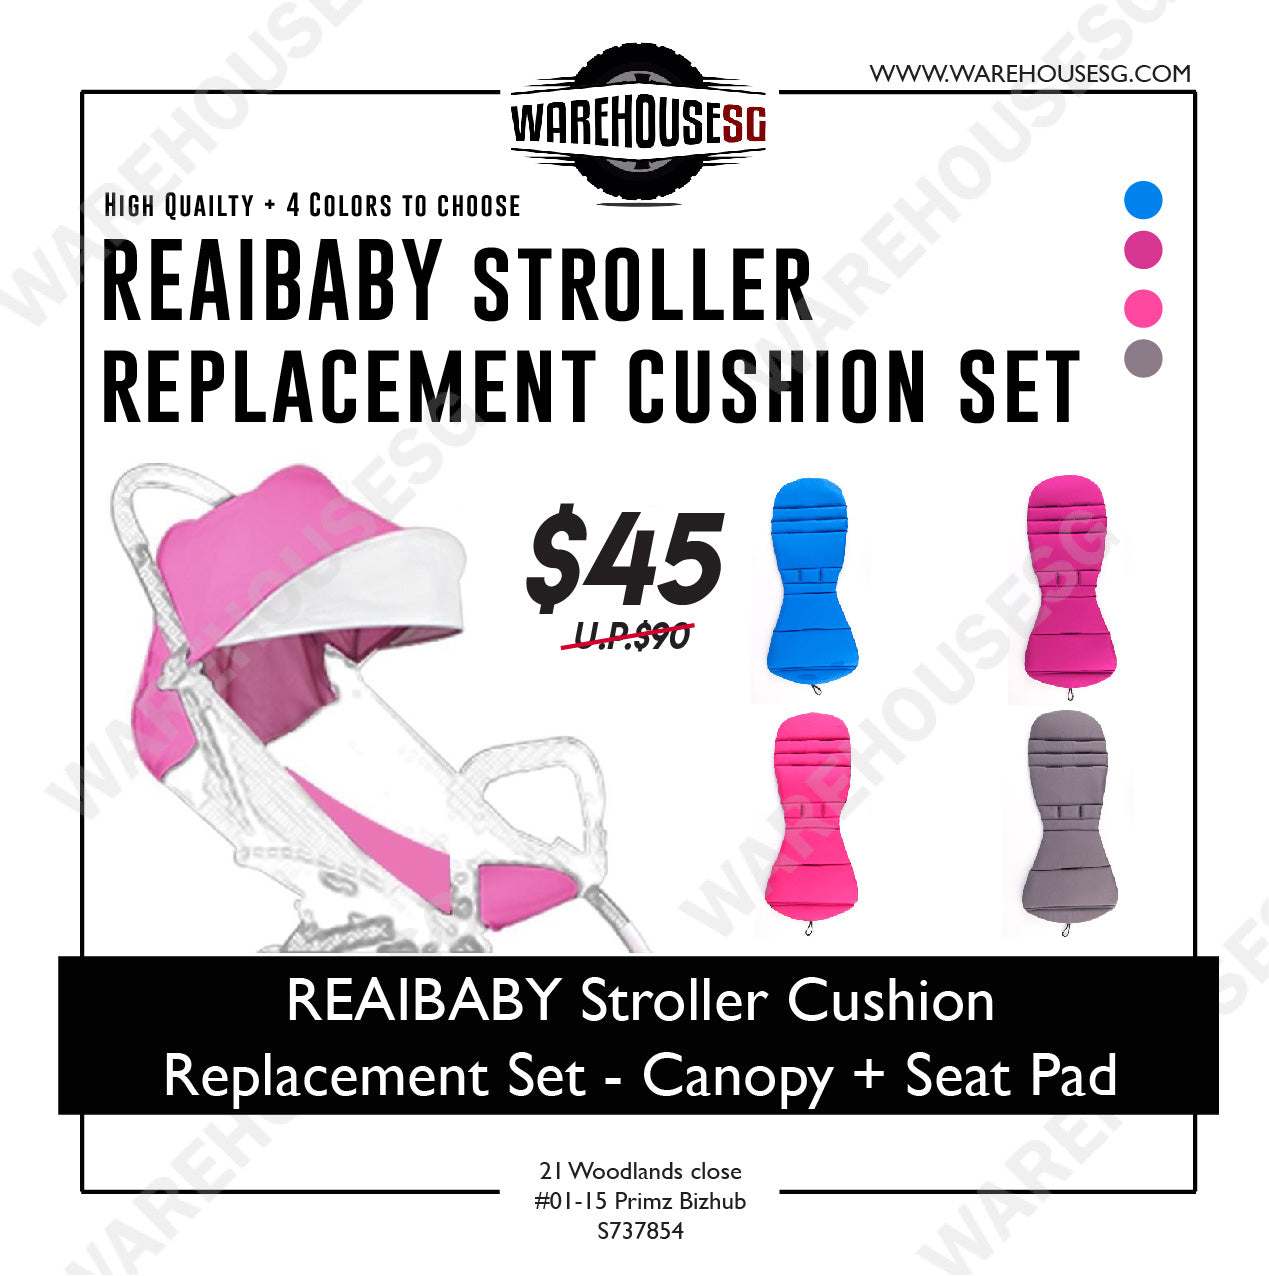 REAIBABY Stroller Cushion Replacement Set – Canopy + Seat Pad